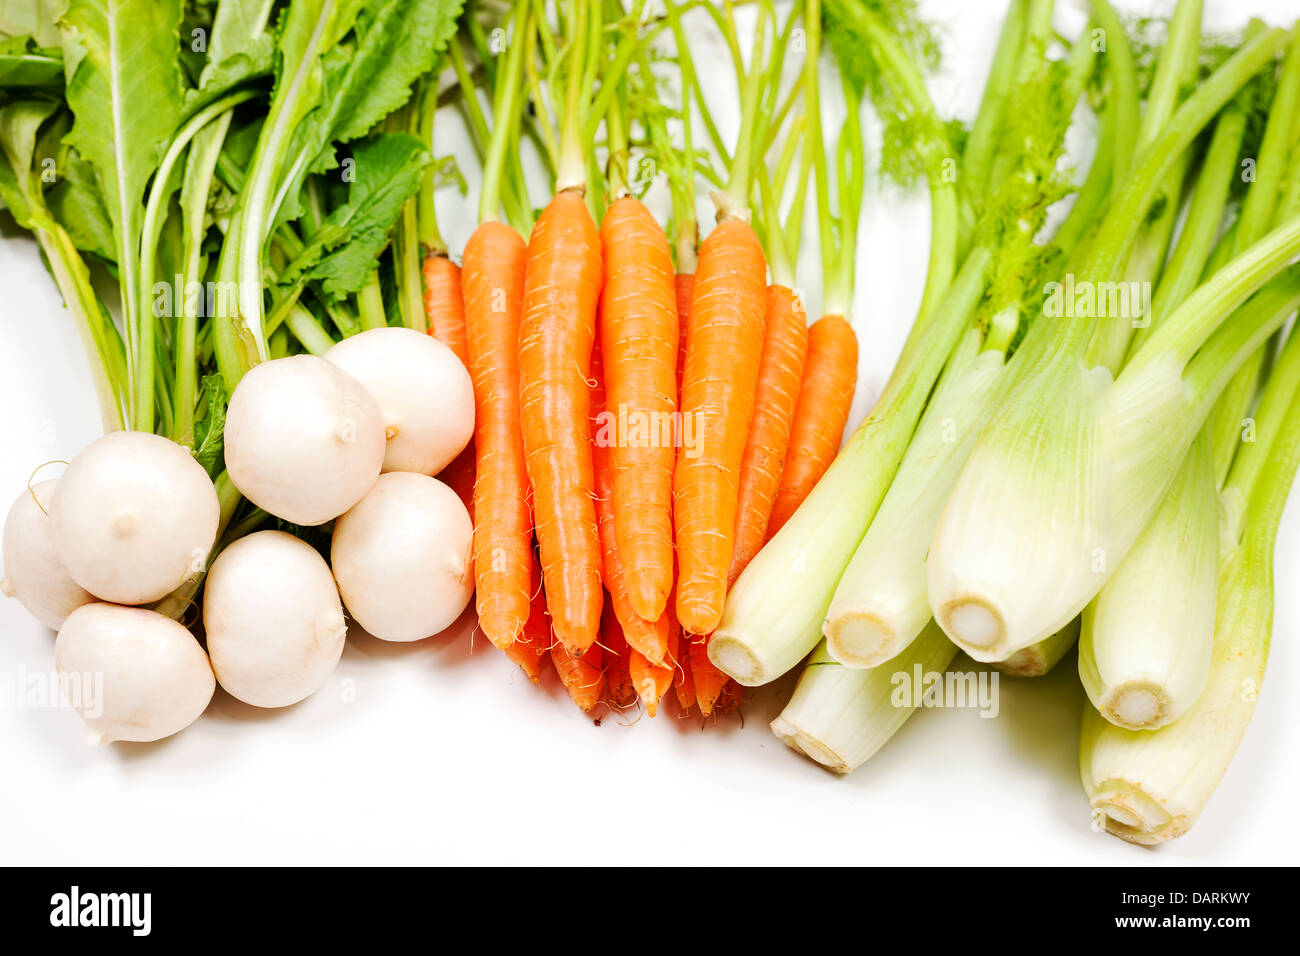 Turnip, carrot and celery from garden on white background - Stock Image